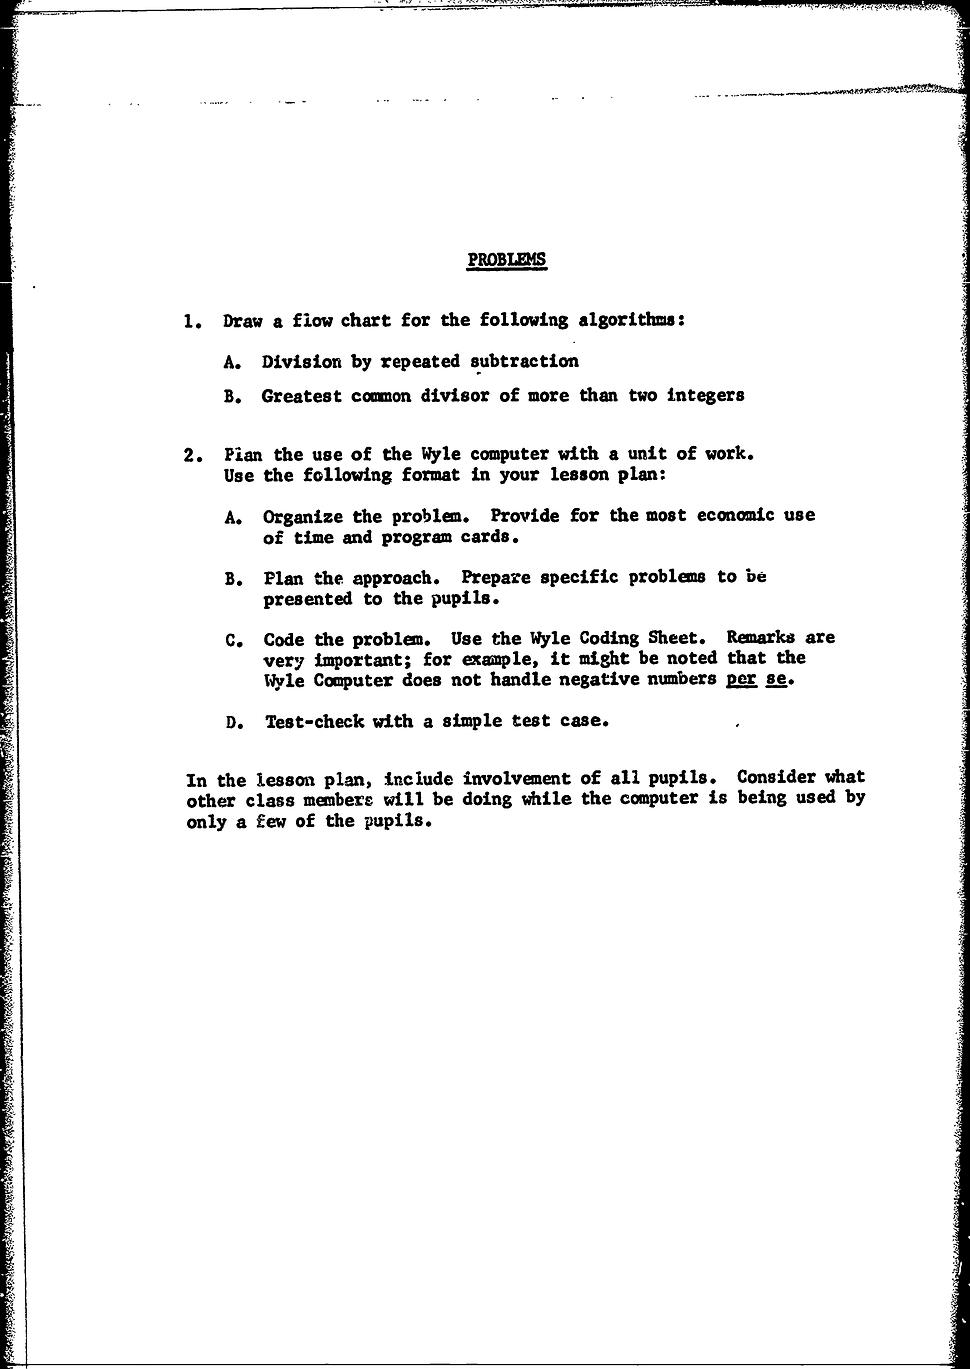 WYLE Instruction_Page_054_Image_0001.tif